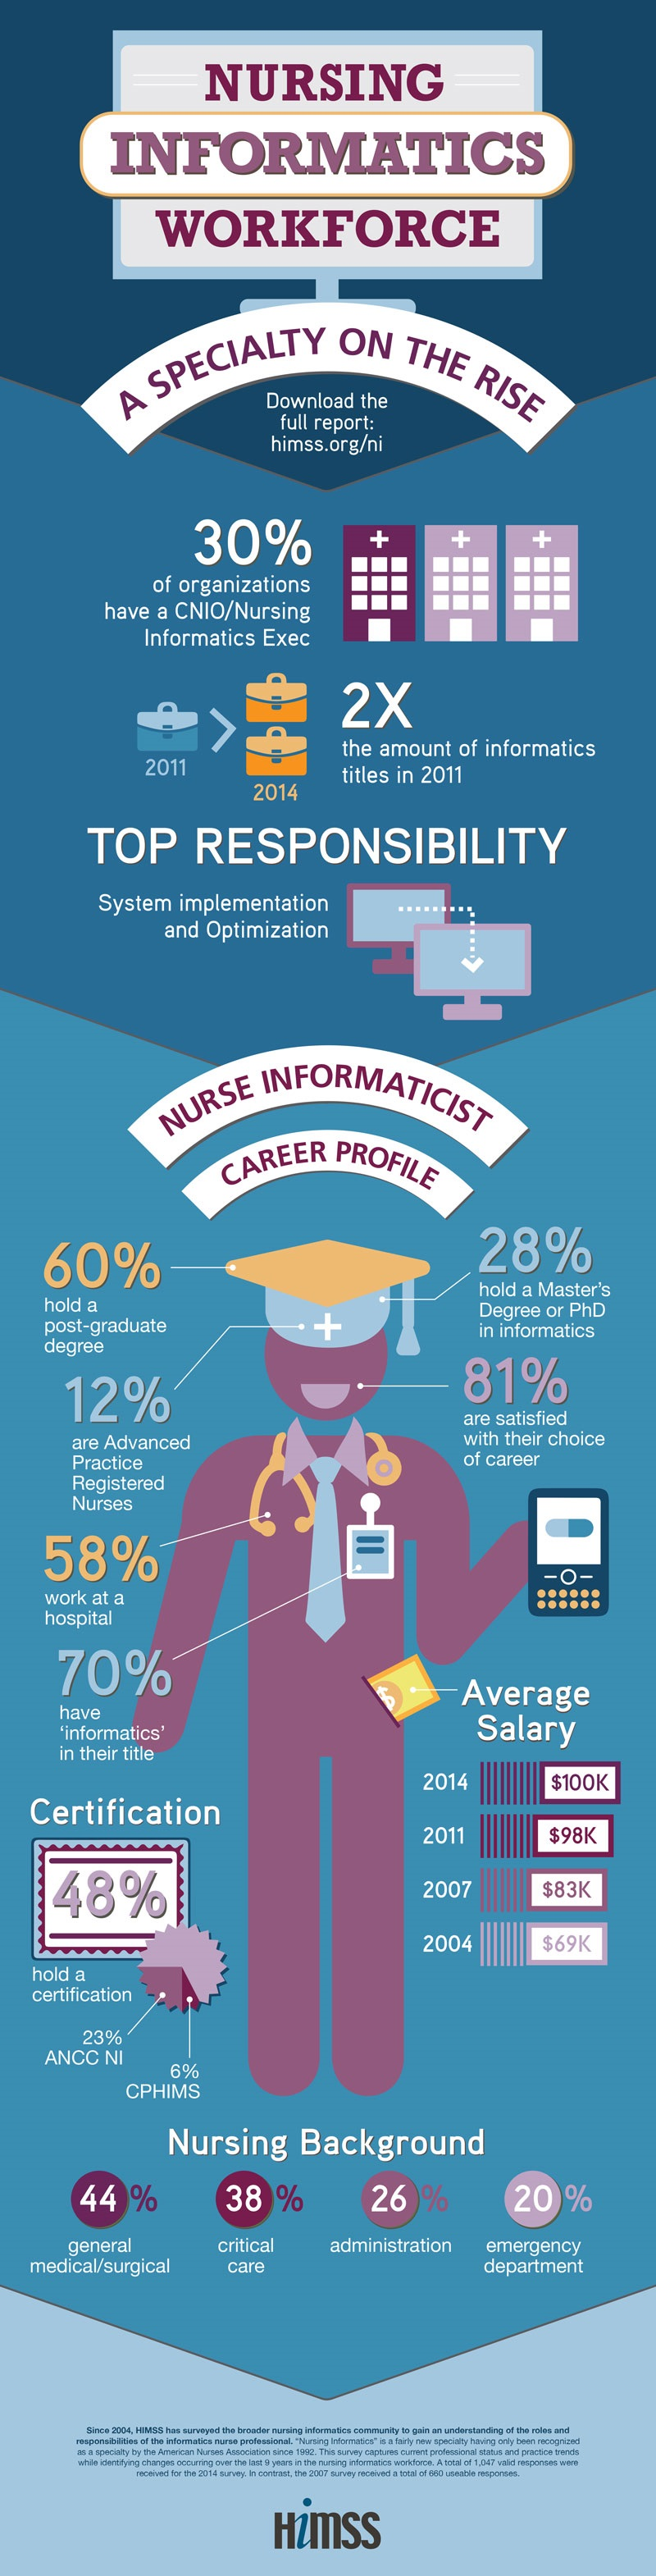 best ideas about nursing informatics jobs 17 best ideas about nursing informatics jobs nursing career nursing student tips and nursing jobs